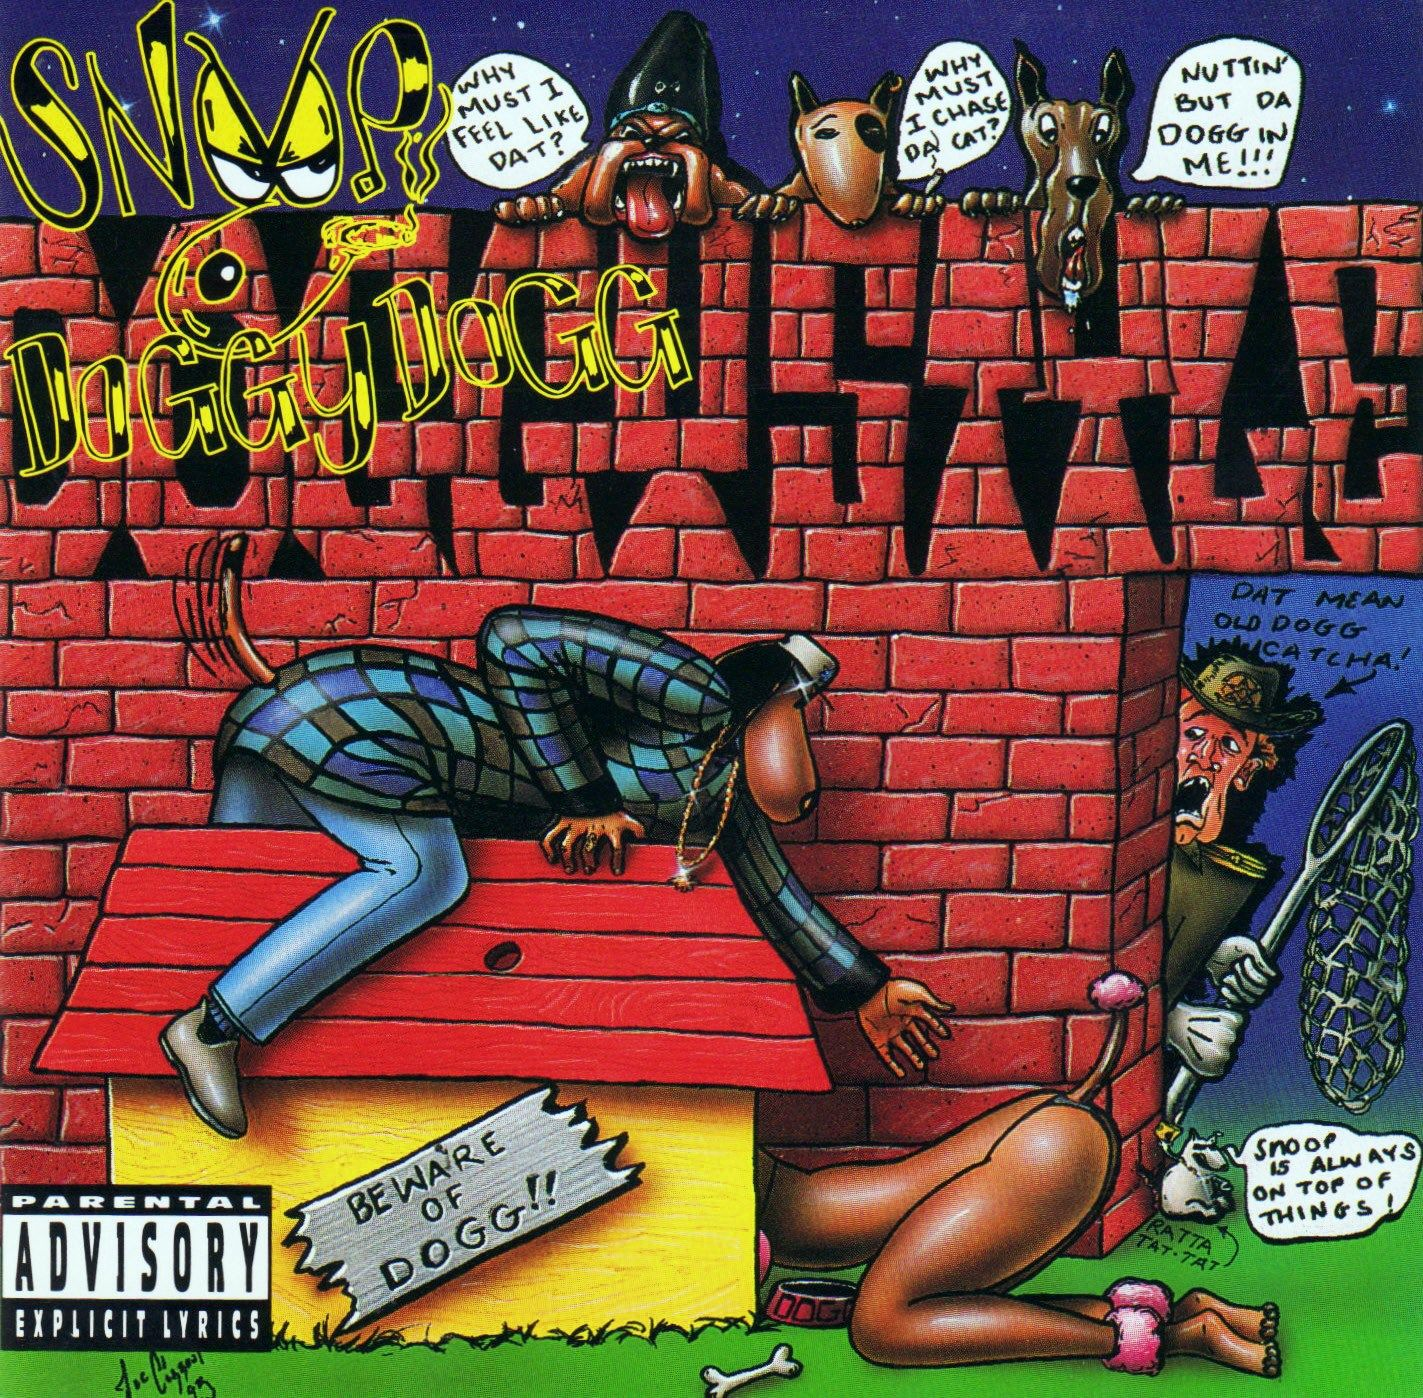 Snoop Dogg - Doggystyle album cover